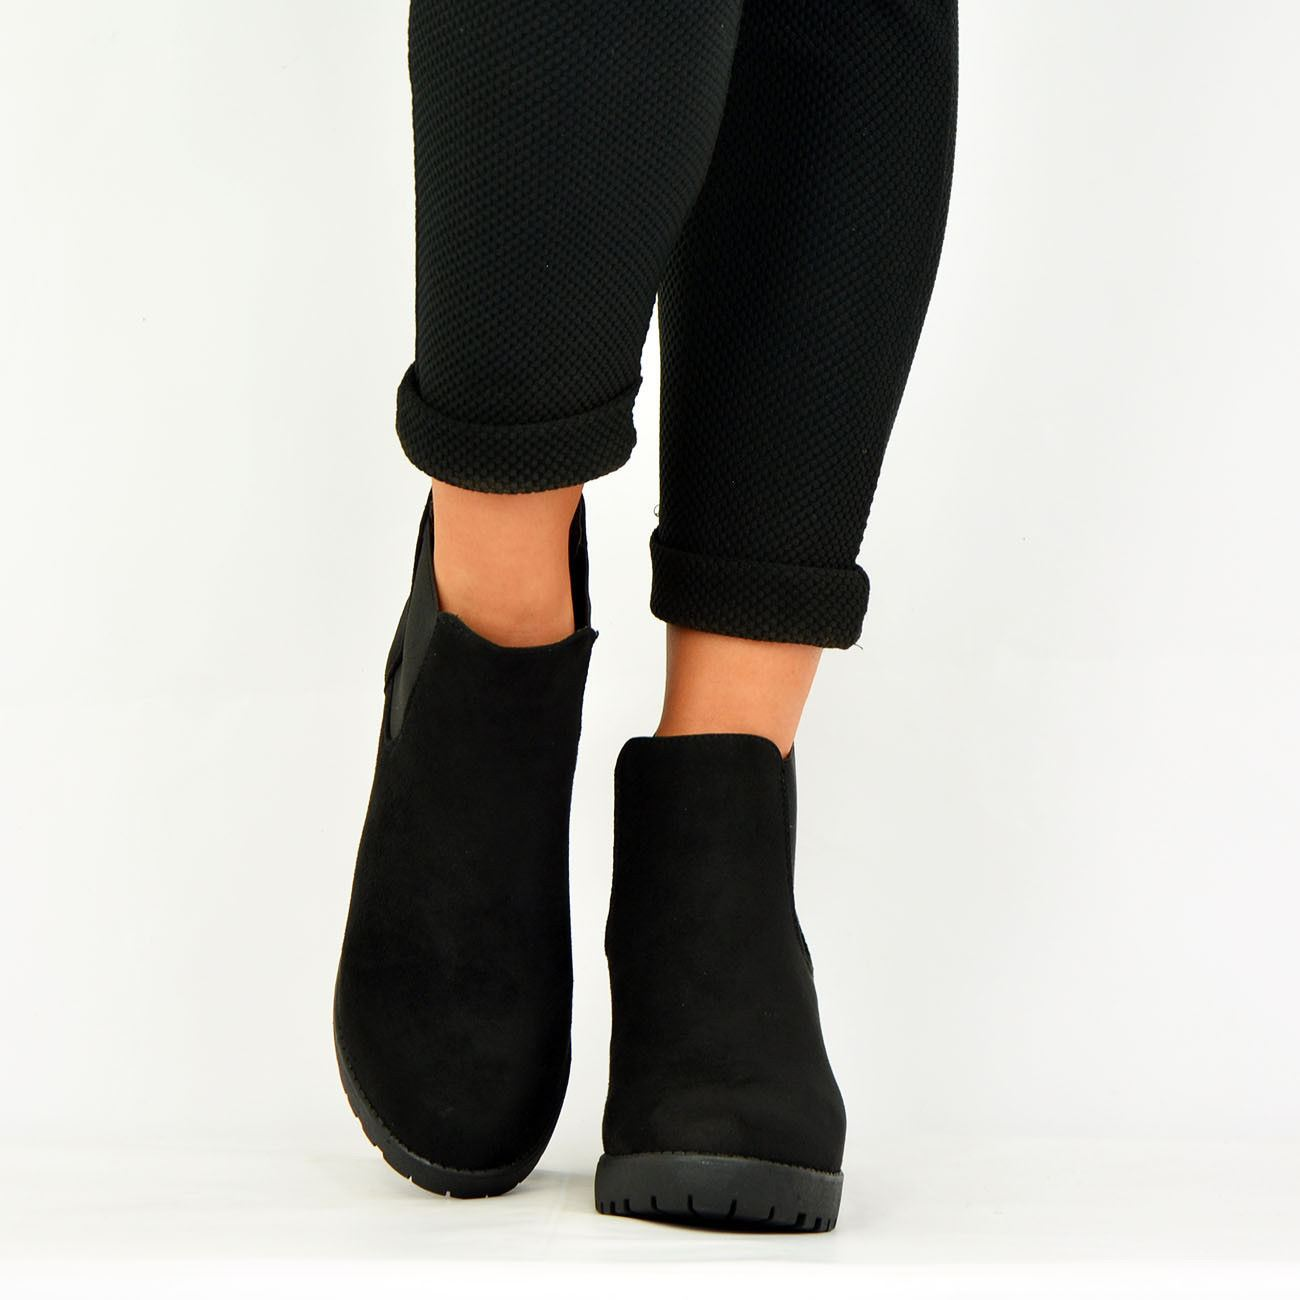 LADIES-WOMENS-ANKLE-CHELSEA-BOOTS-CHUNKY-BLOCK-HEELS-PLATFORM-SHOES-SIZE-UK-3-8 thumbnail 10